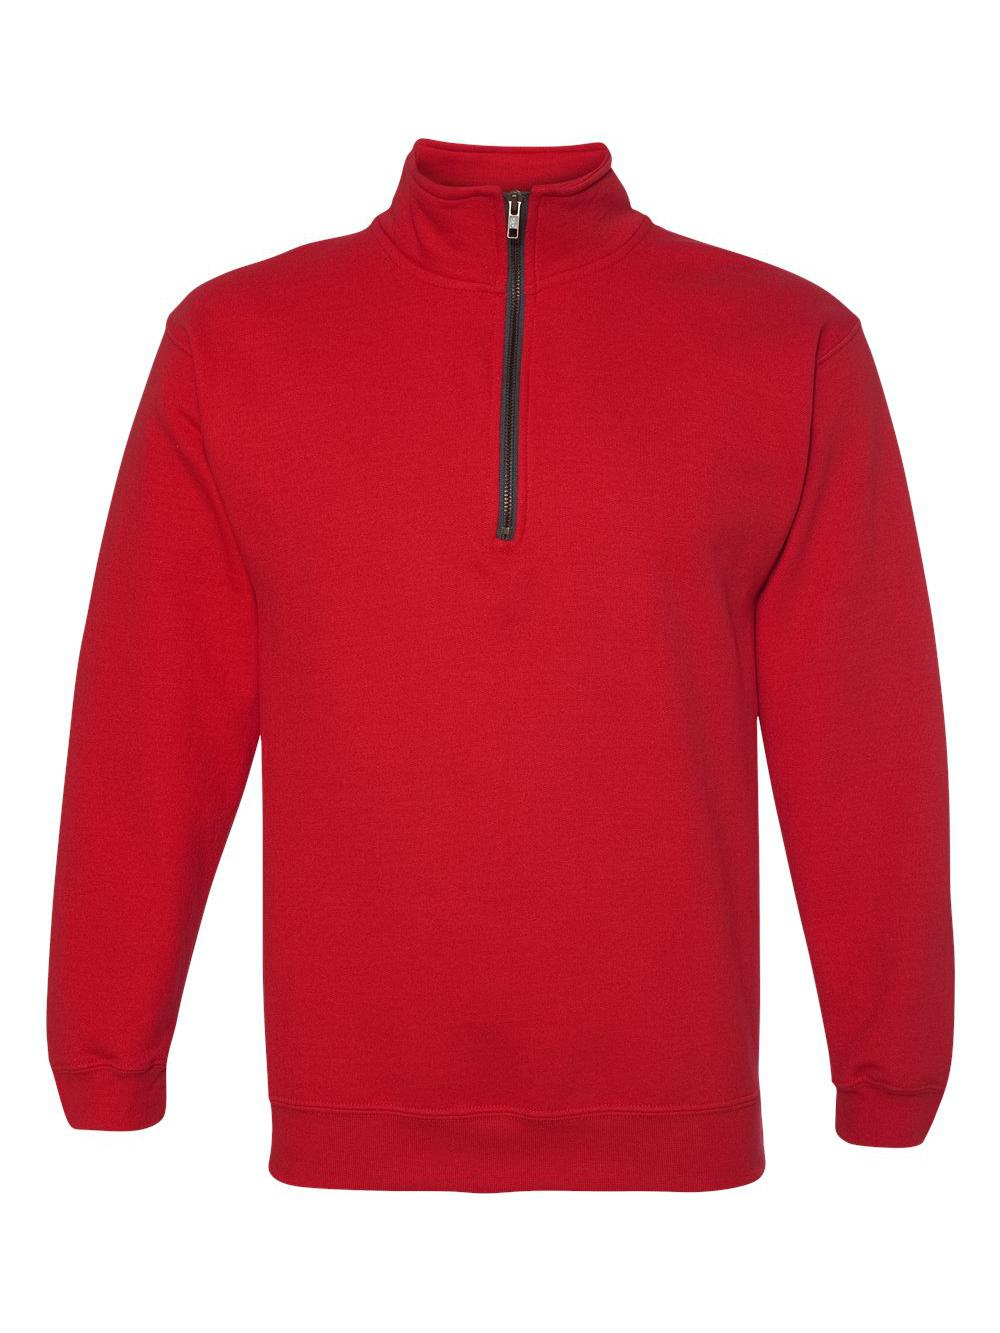 Gildan-Heavy-Blend-Quarter-Zip-Cadet-Collar-Sweatshirt-18800 thumbnail 24